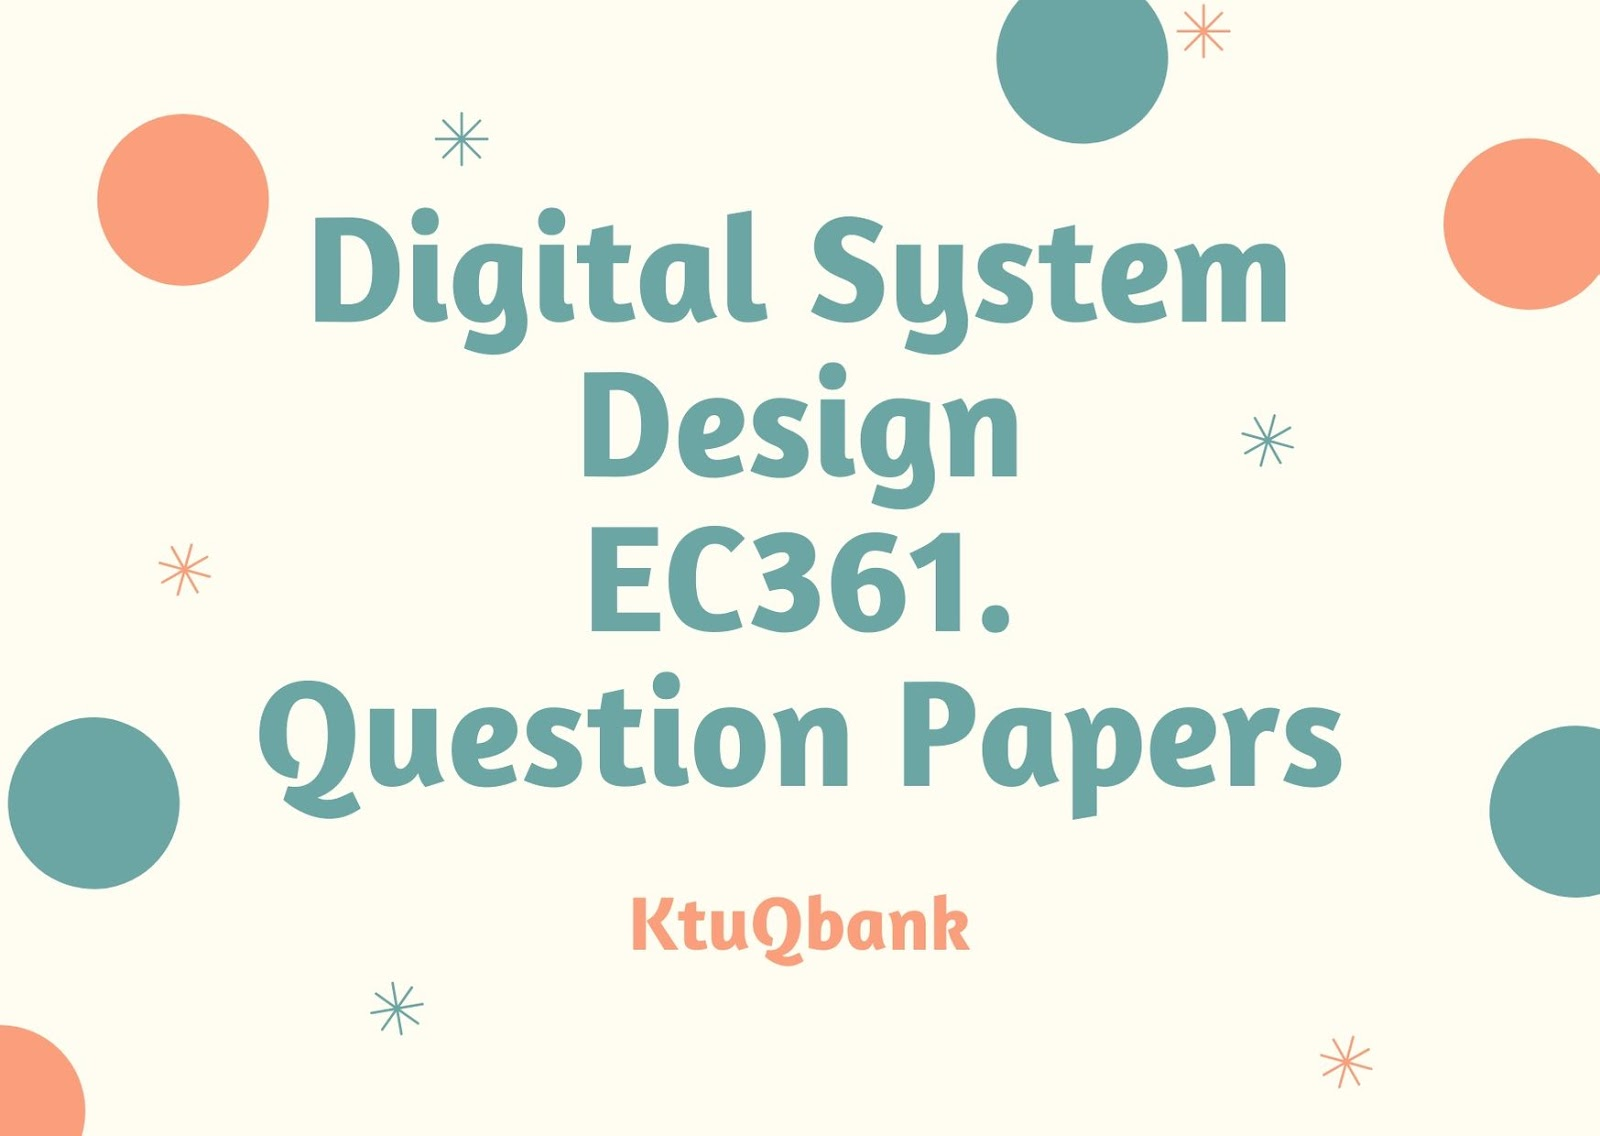 Digital System Design | EC361 | Question Papers (2015 batch)